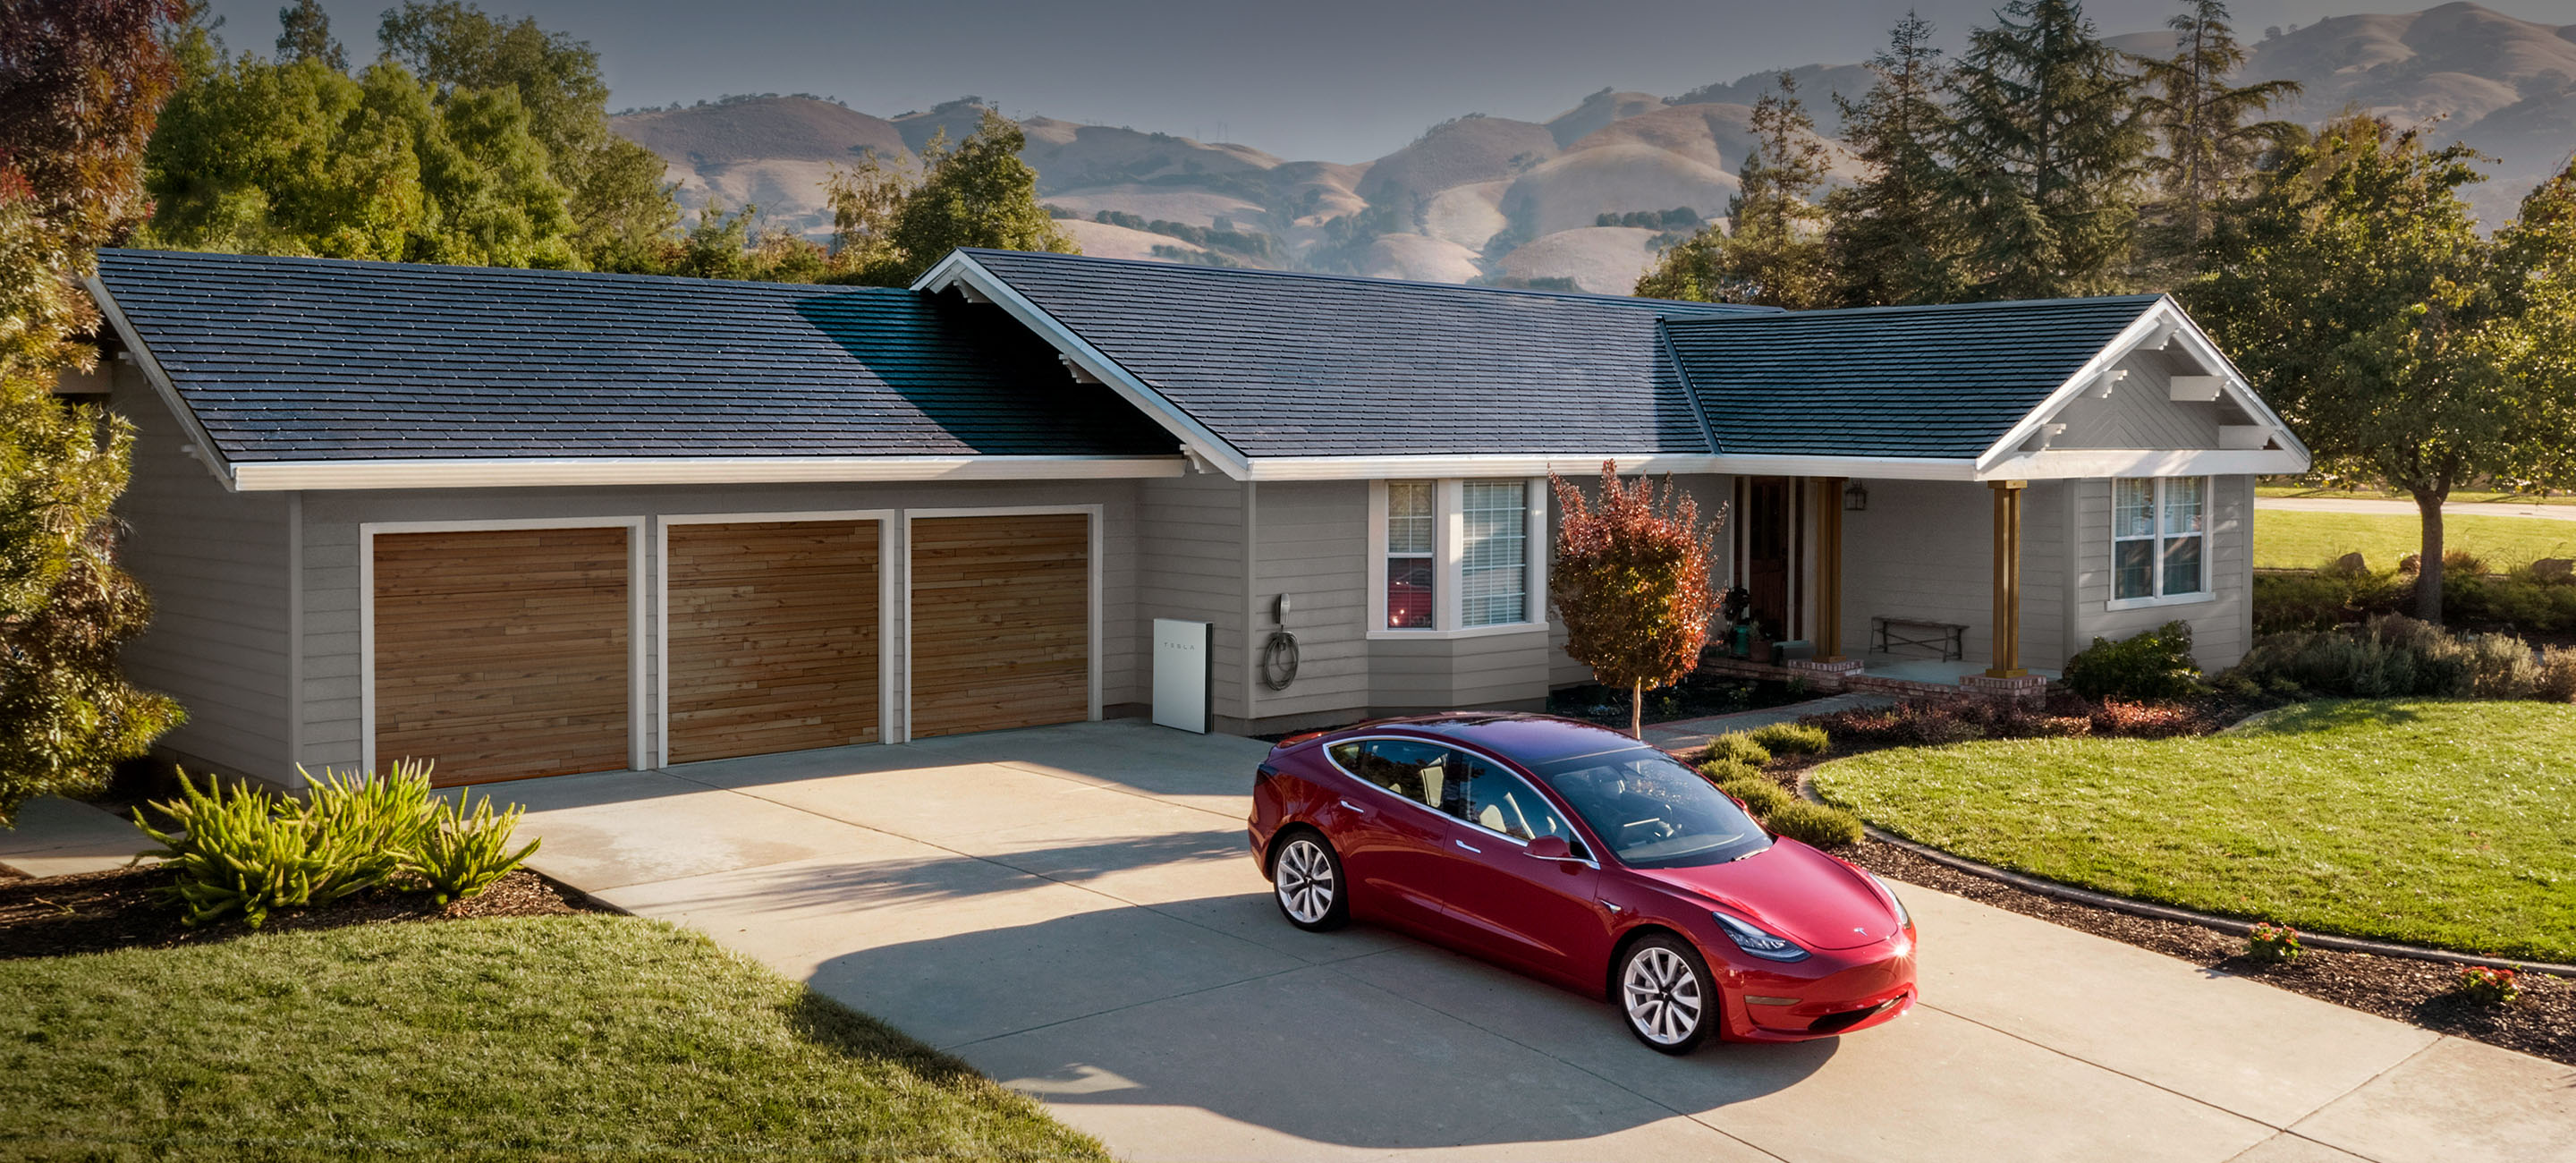 Elon Musk and Tesla to Redesign the World's Energy System